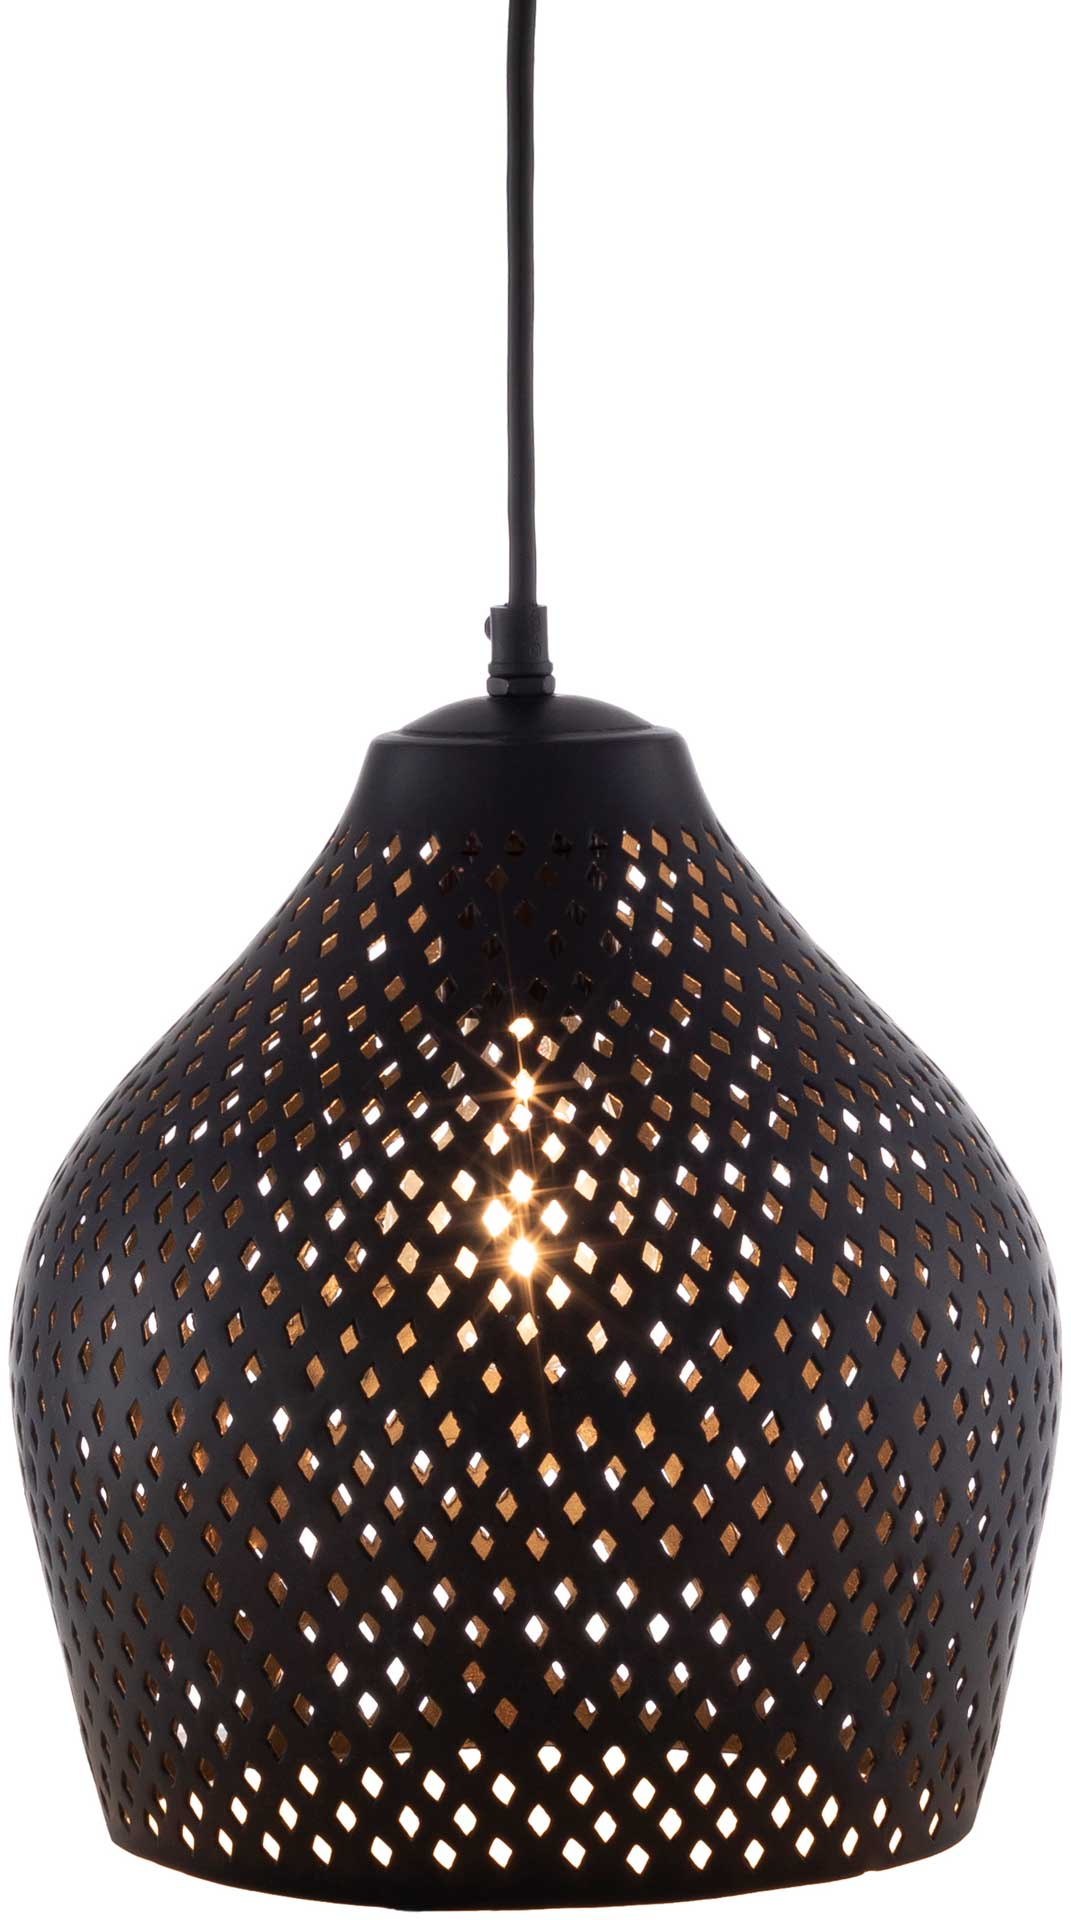 Adele Bell Ceiling Lamp Black